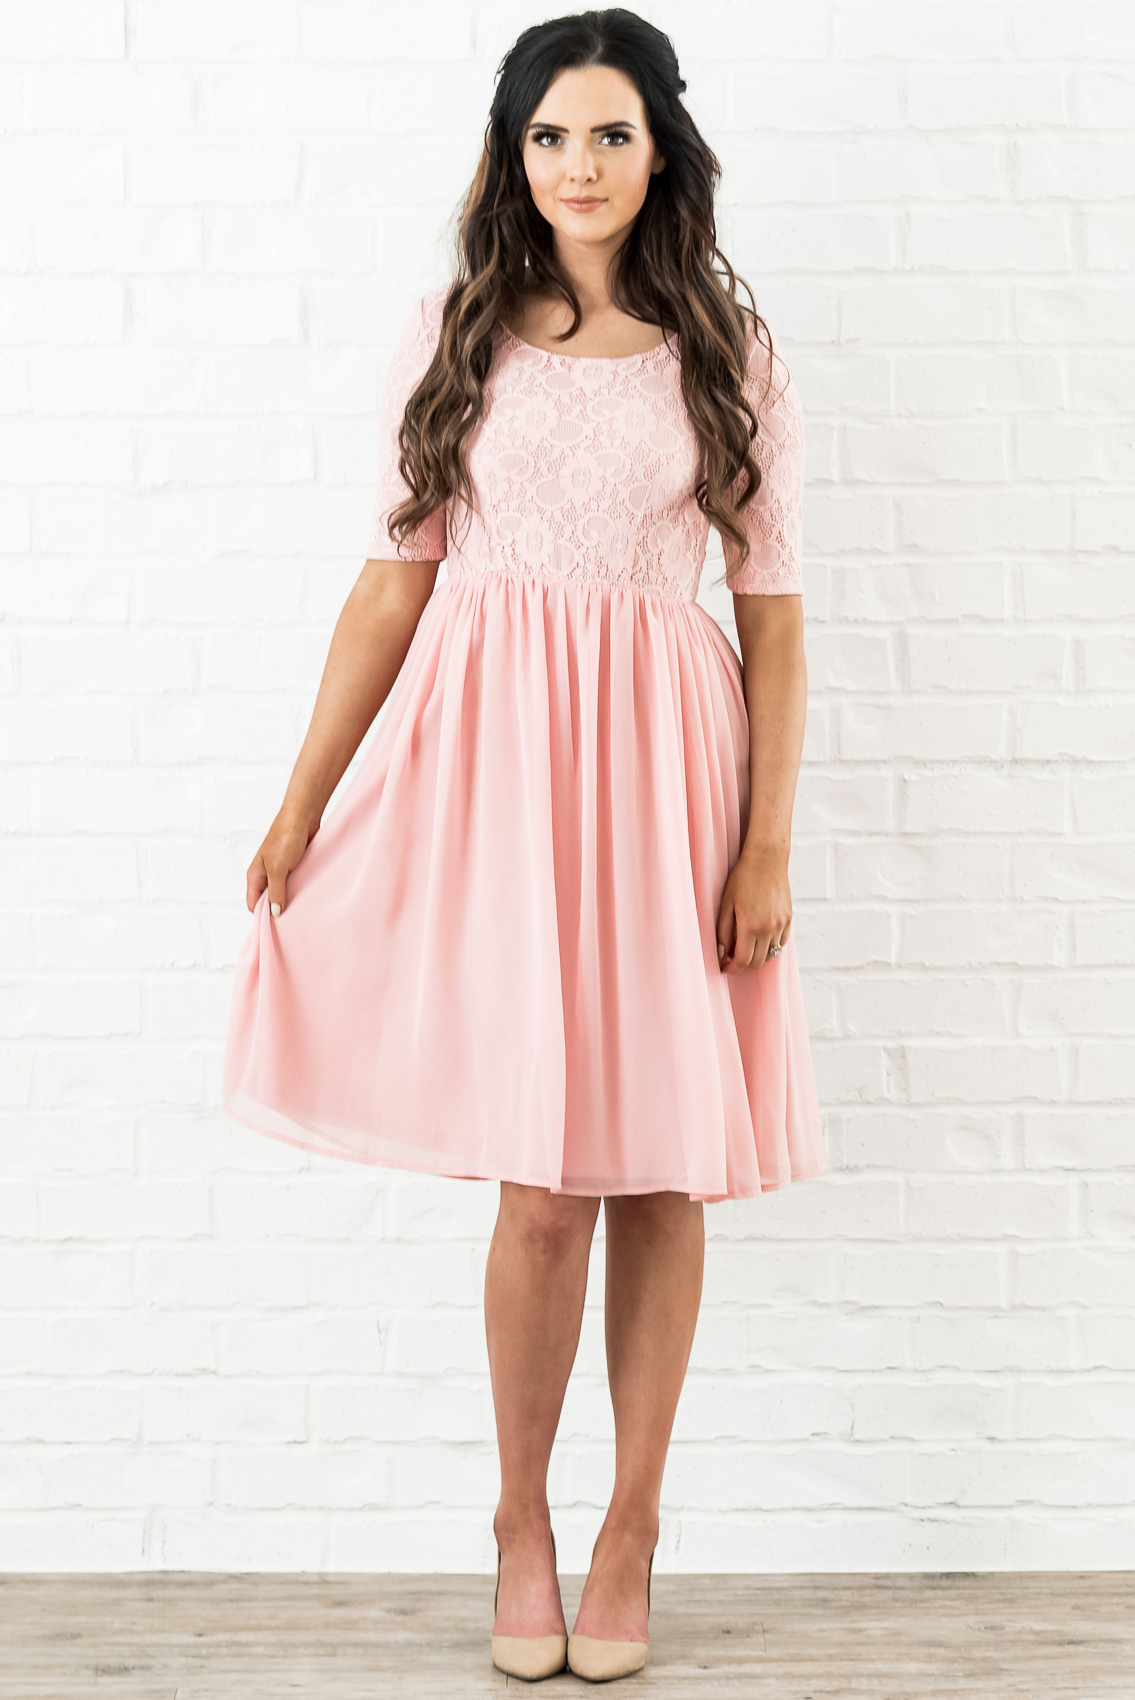 72dd468c53f Erica (or Erika) Modest Dress or Bridesmaid Dress in Blush Pink Lace ...